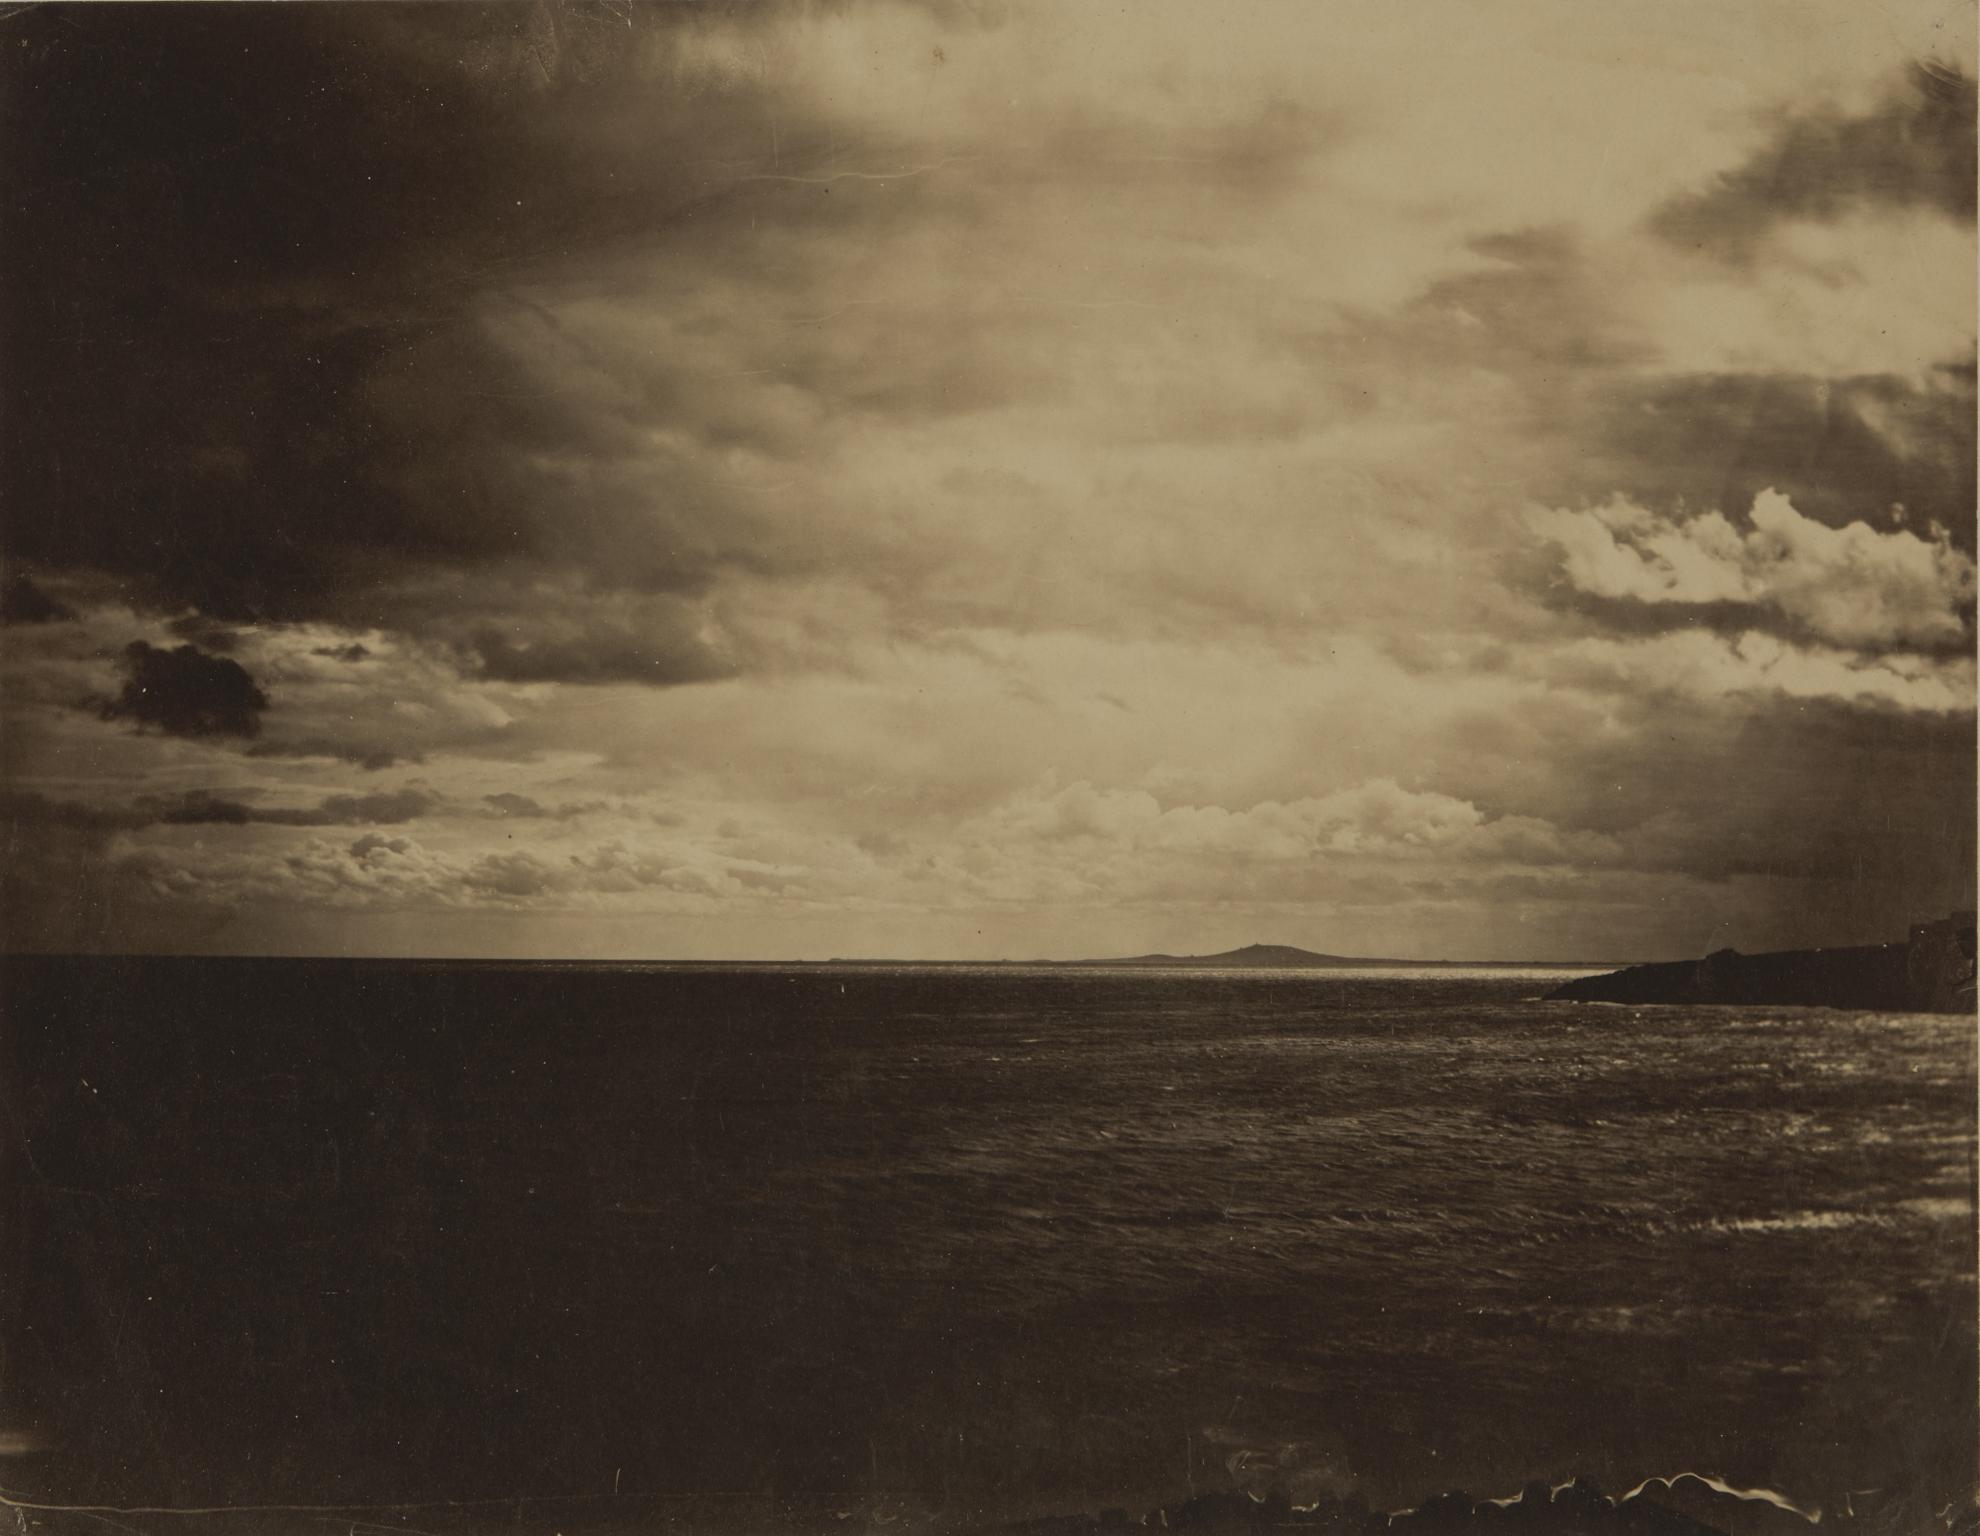 Gustave Le Gray-Ciel Charge - Mer Mediterranee (Cloudy Sky, Mediterranean Sea)-1857